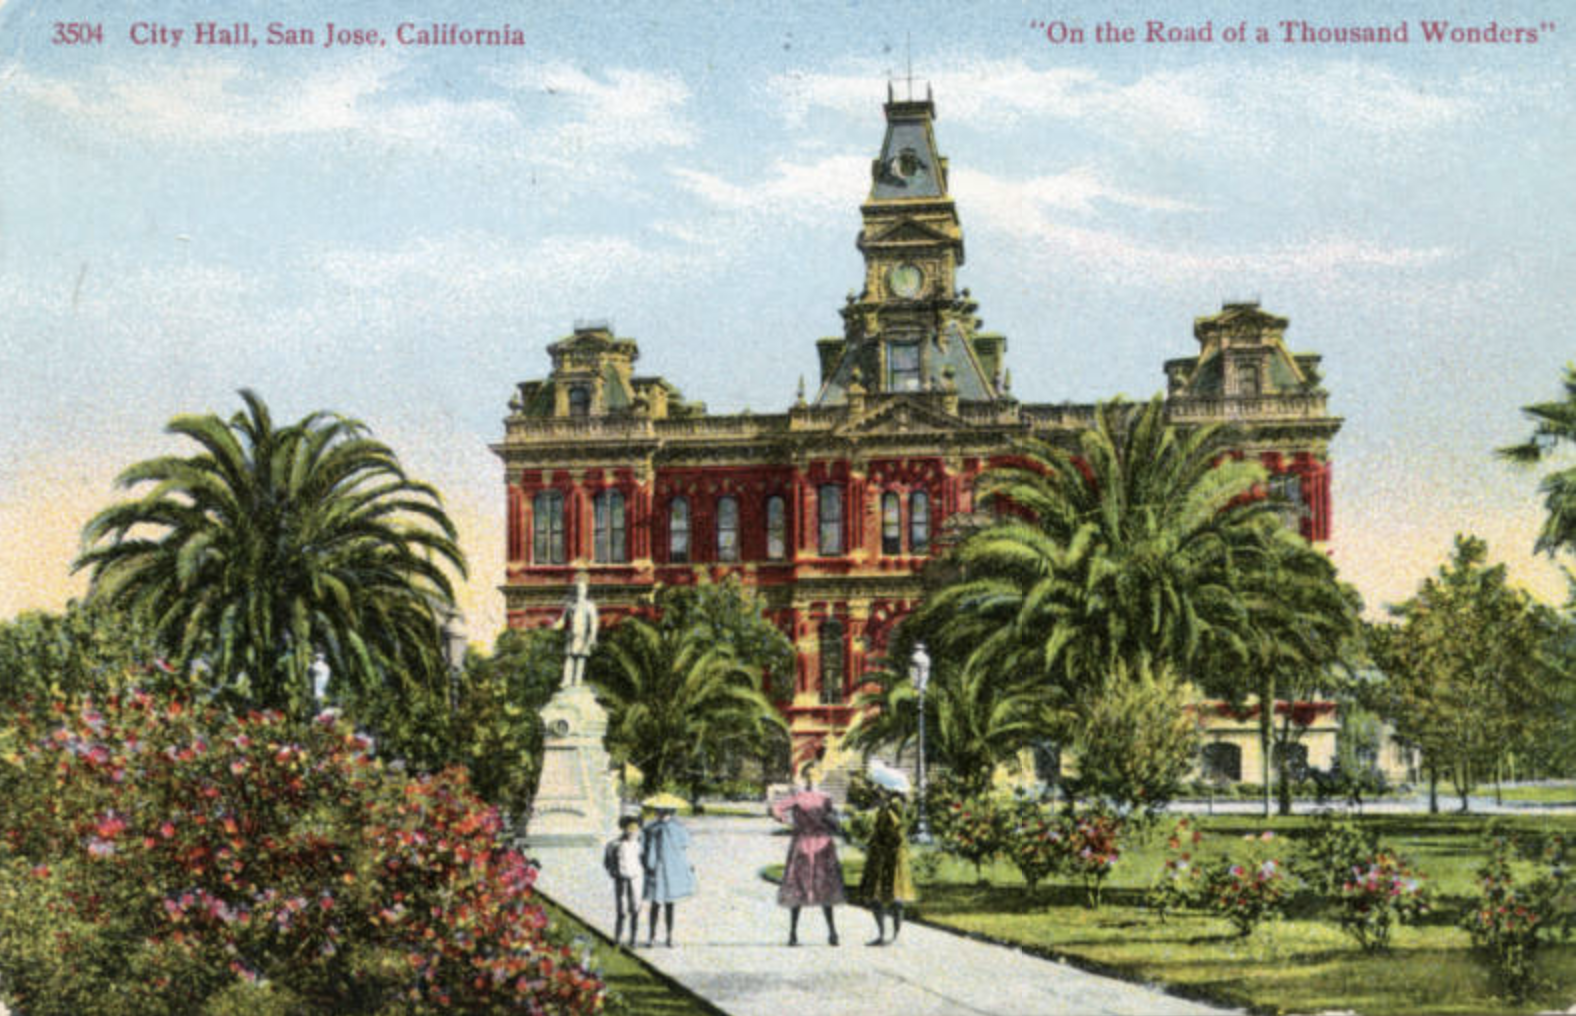 San Jose City Hall circa 1900